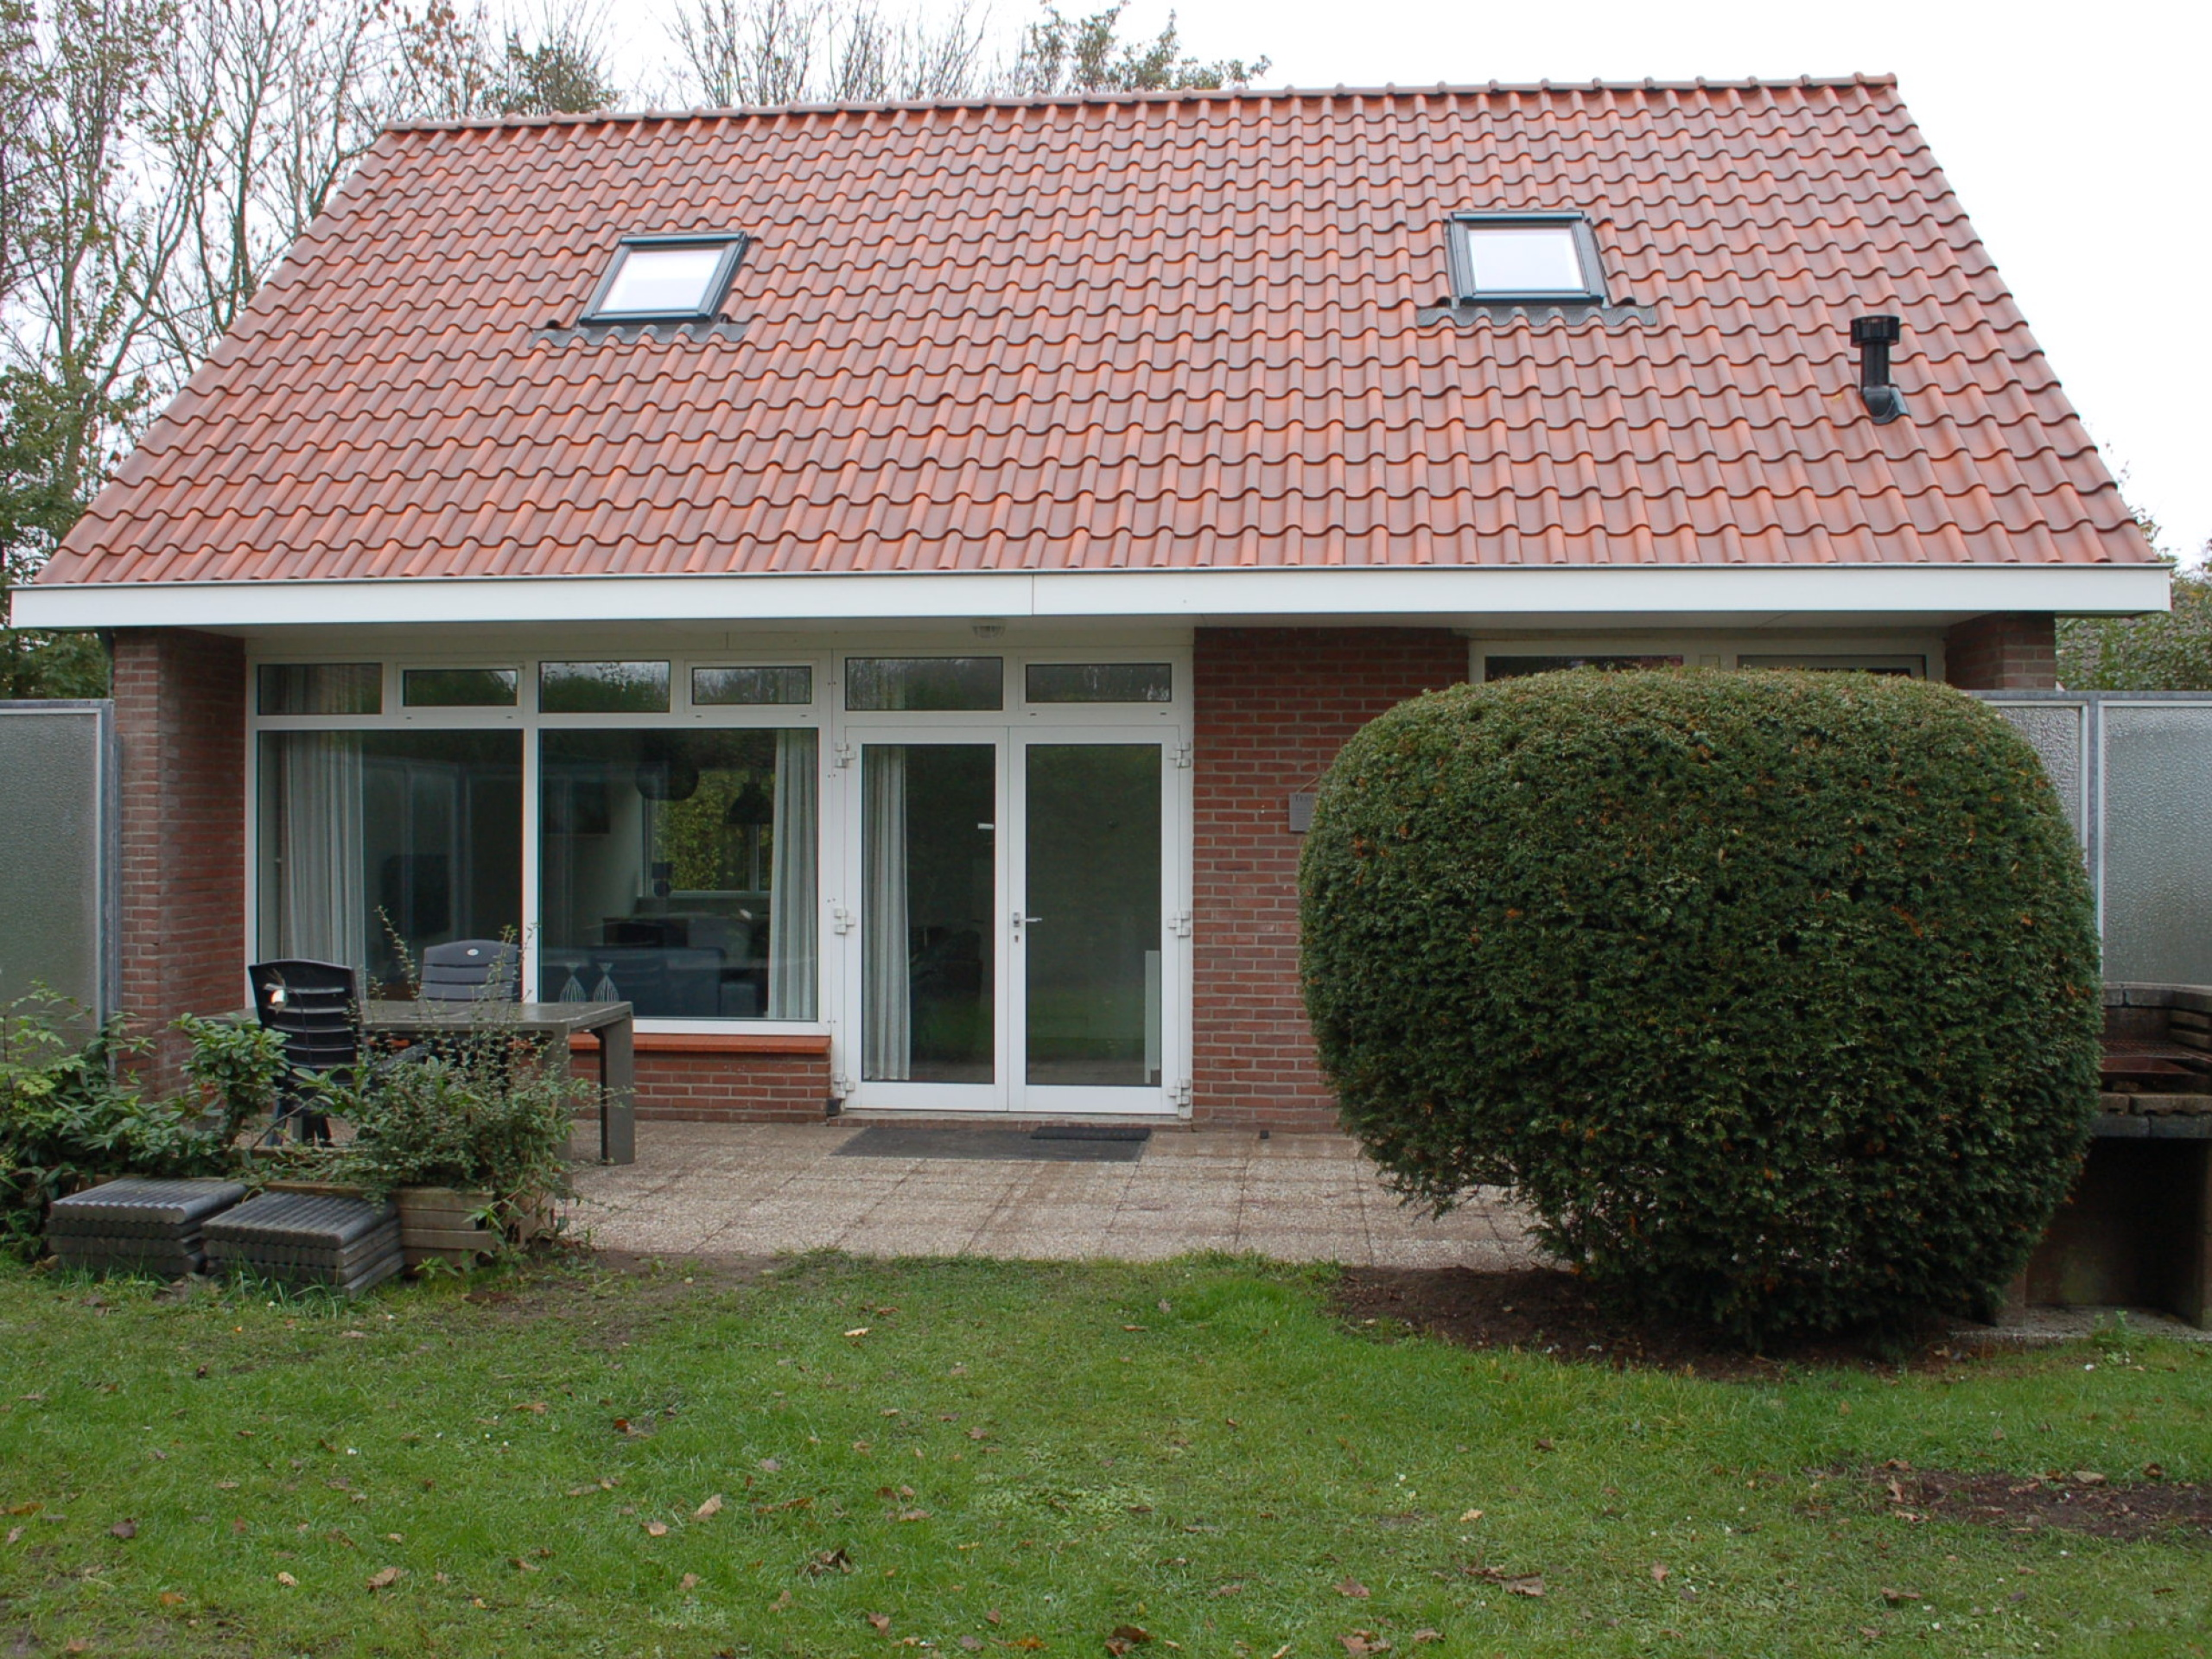 Detached holiday home with fireplace near De Slufter